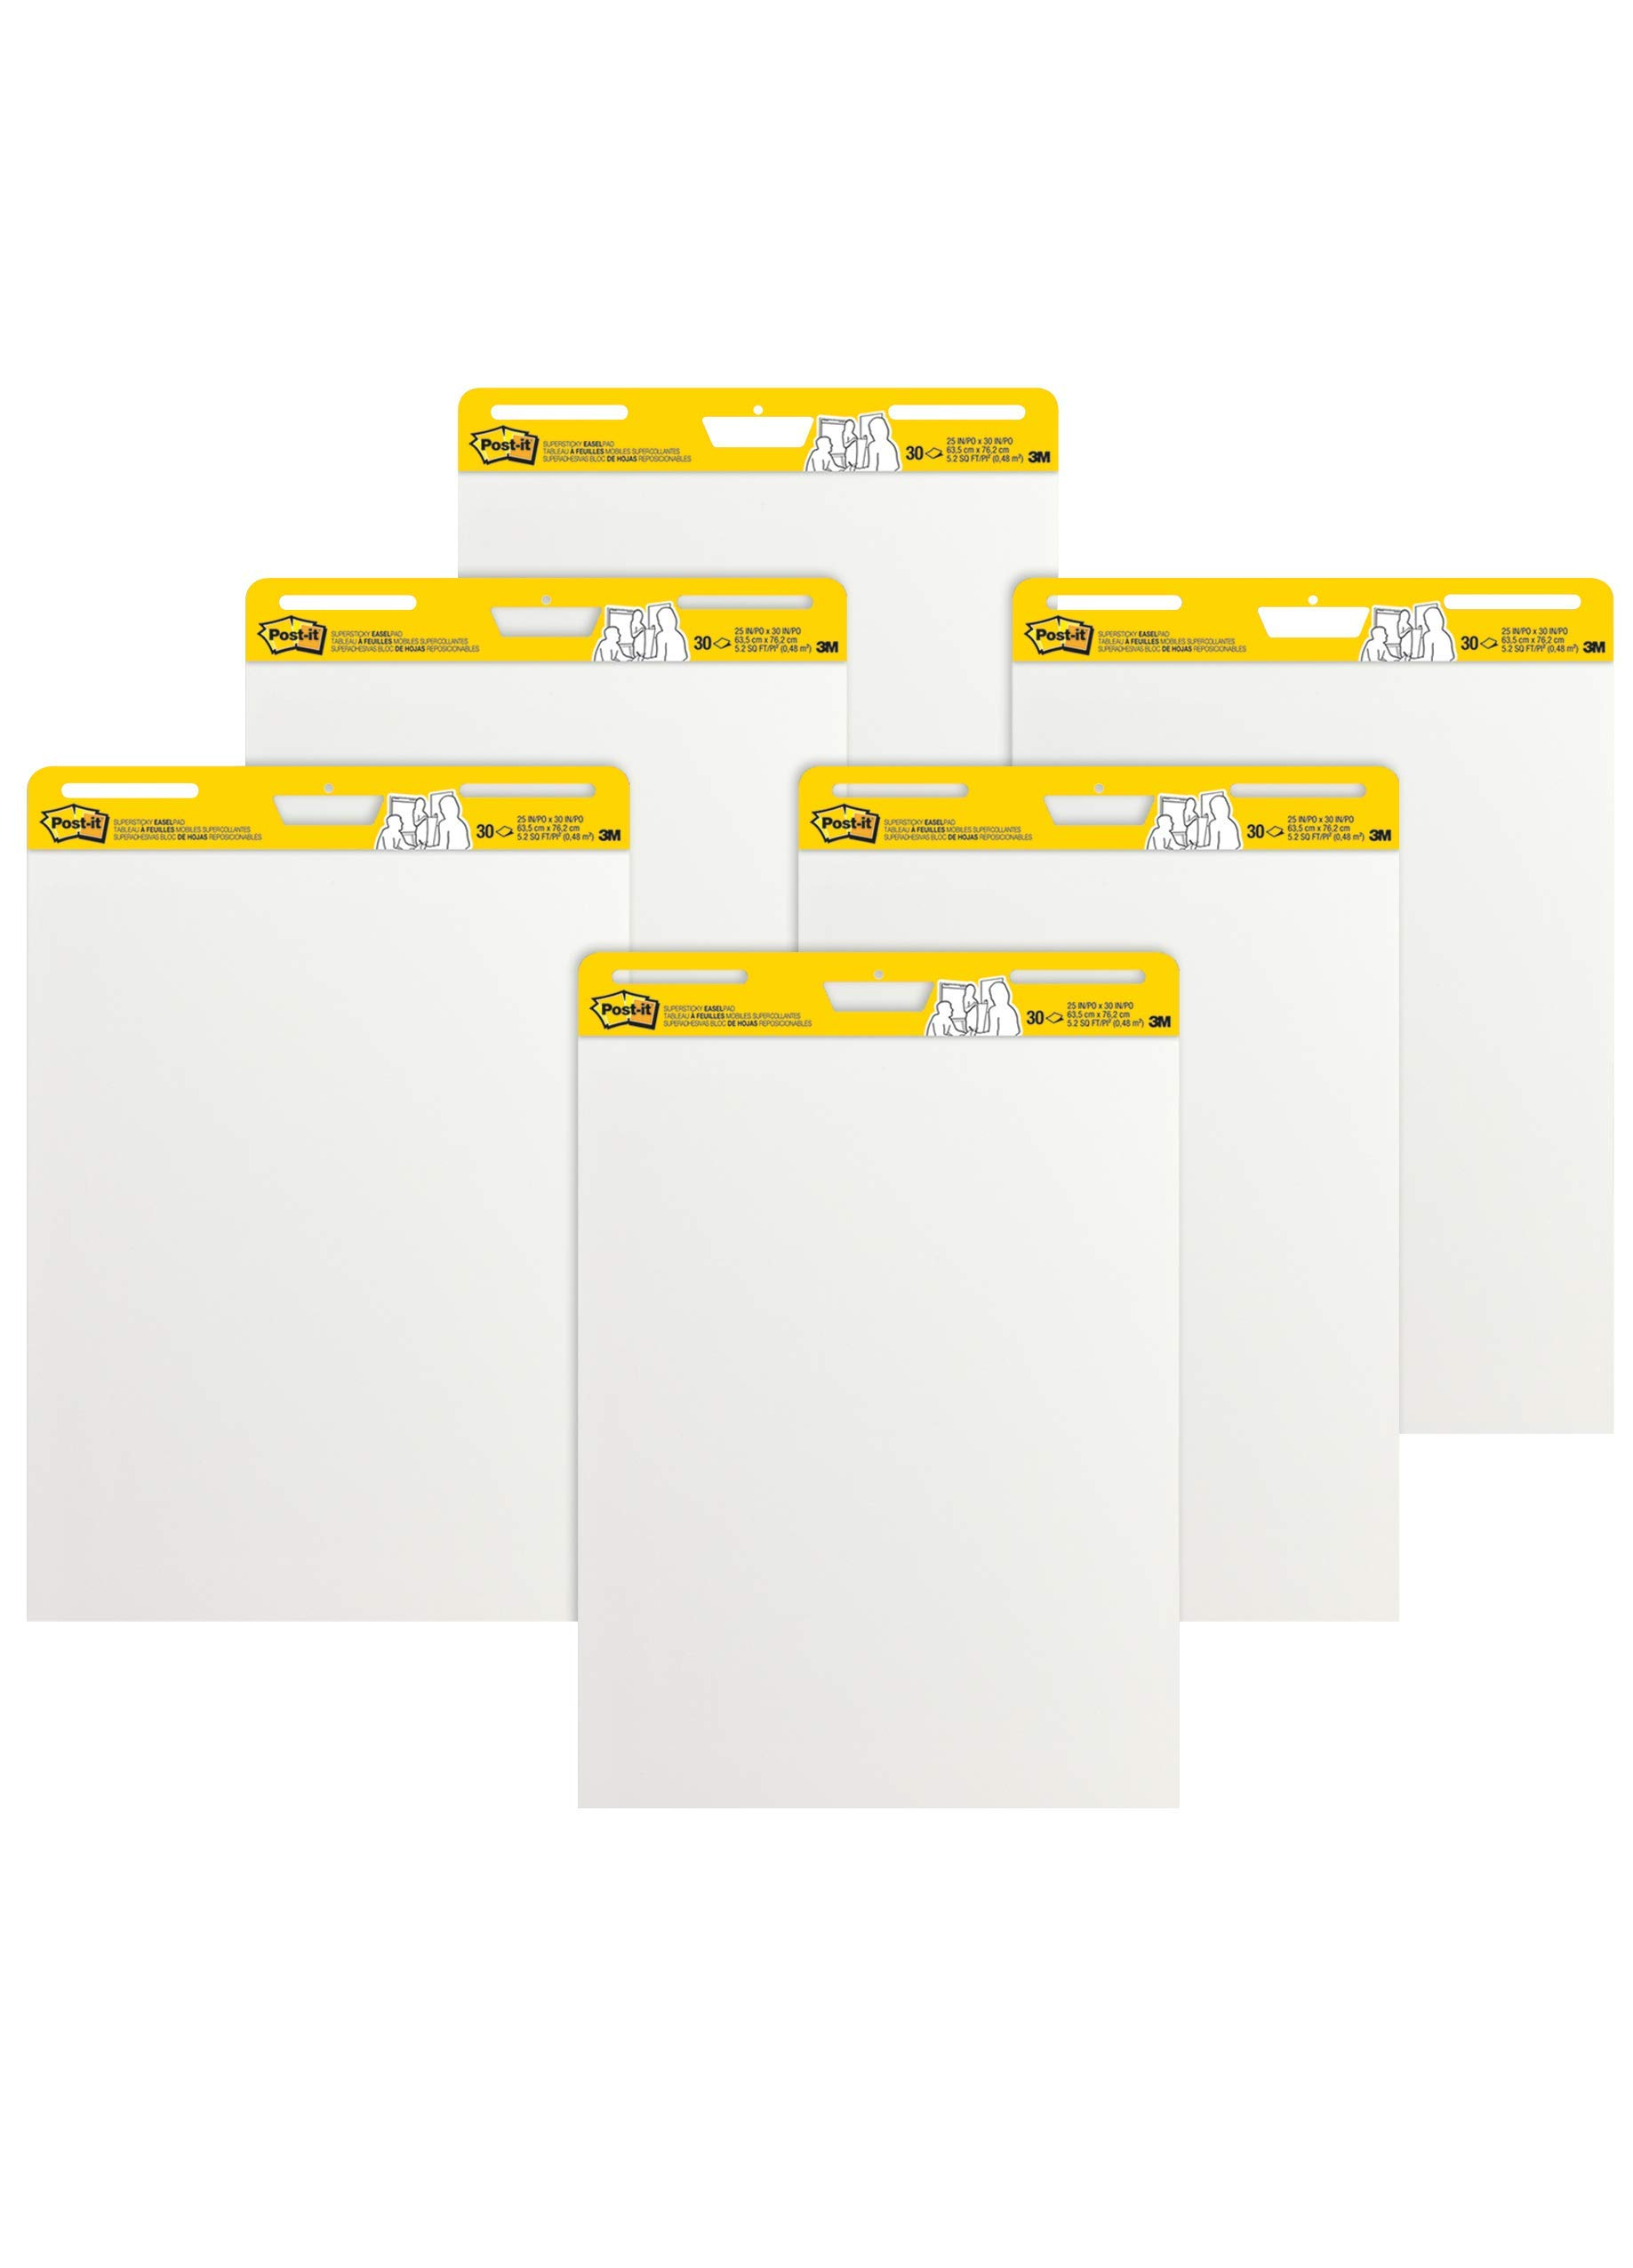 Post-it Super Sticky Easel Pad, 25 x 30 Inches, 30 Sheets/Pad, 6 Pads (559VAD6PK), Large White Premium Self Stick Flip Chart Paper, Super Sticking Power (Renewed) by Post-it (Image #1)